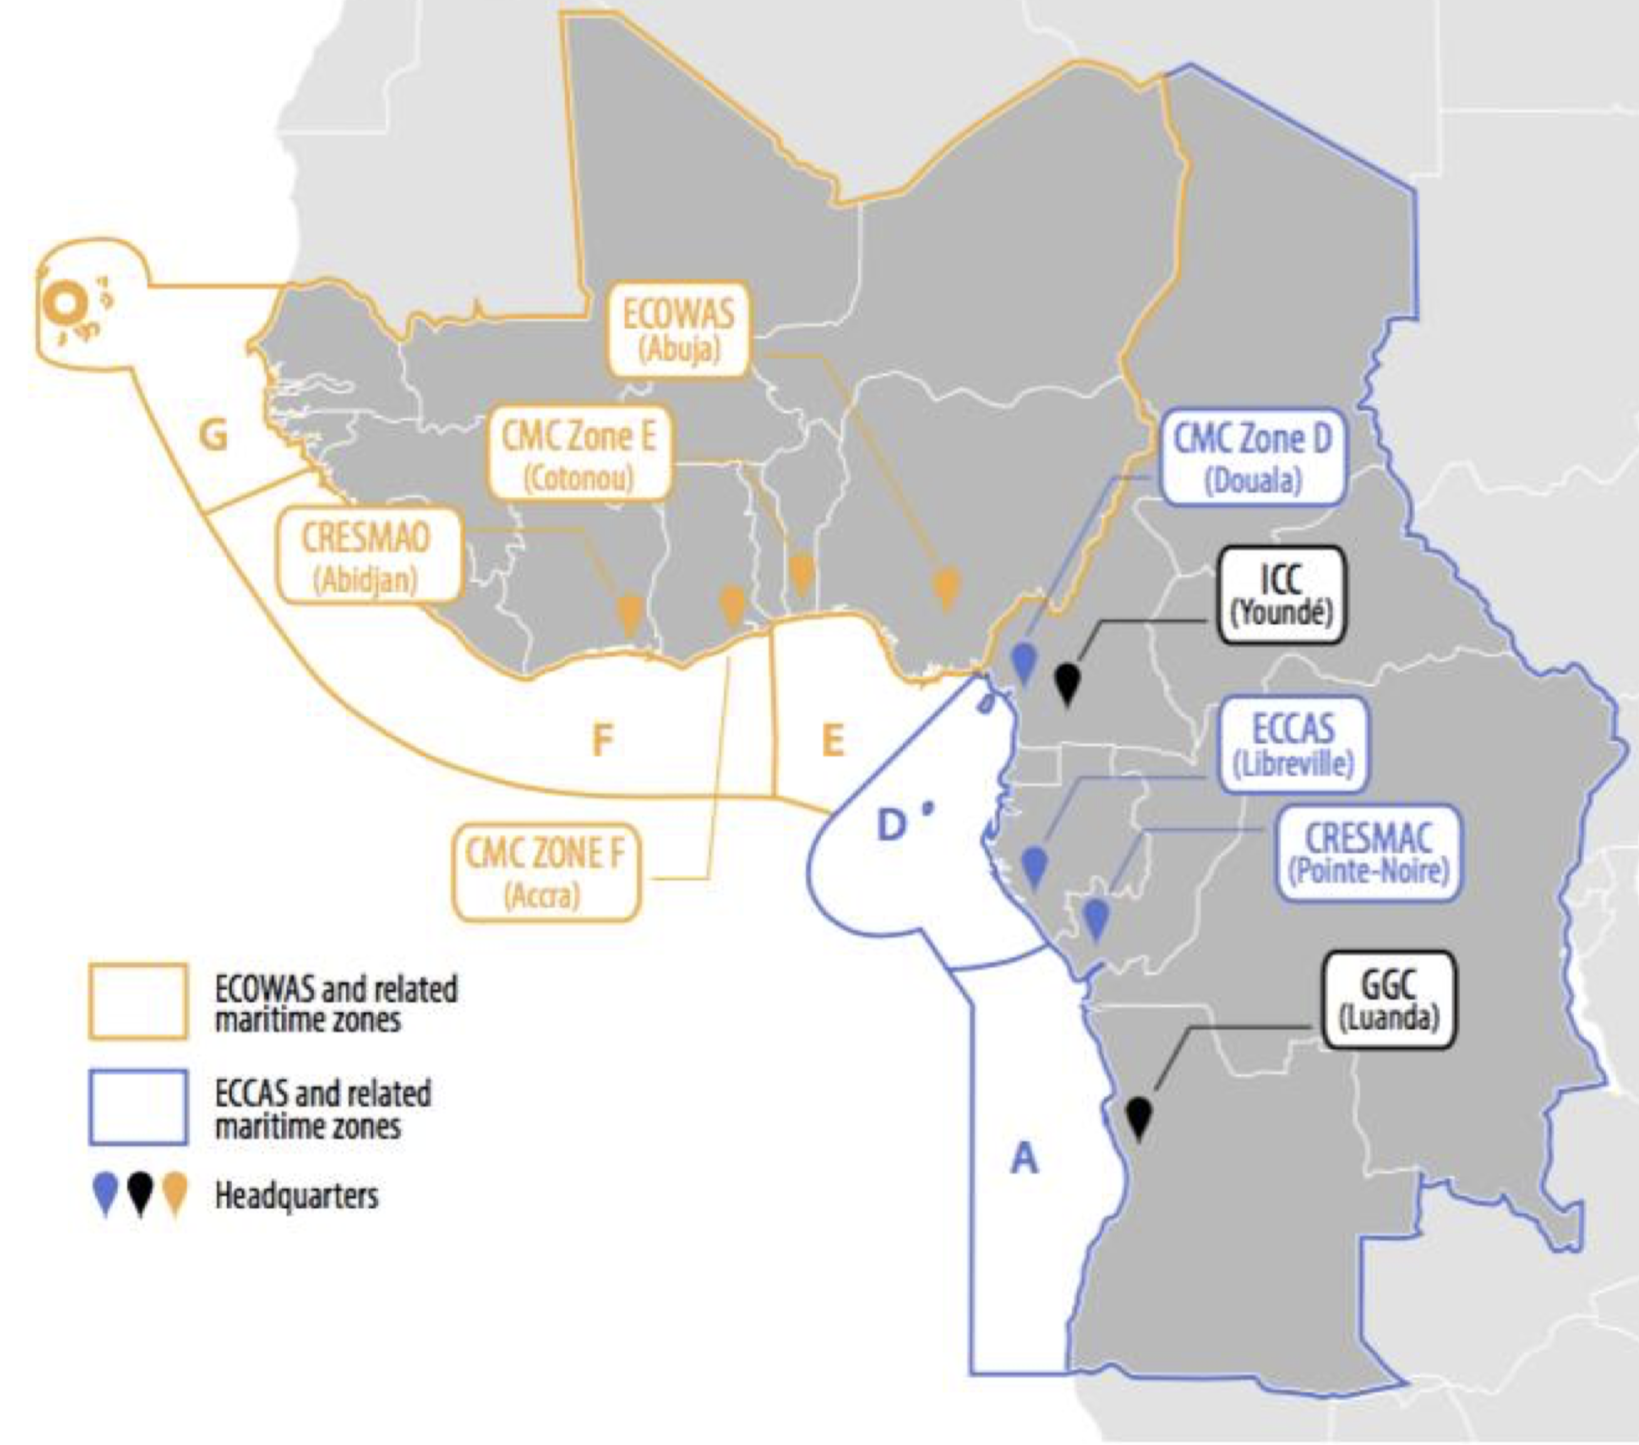 ICC and CMC Gulf of Guinea outline with ECOWAS and ECCAS related maritime zones.